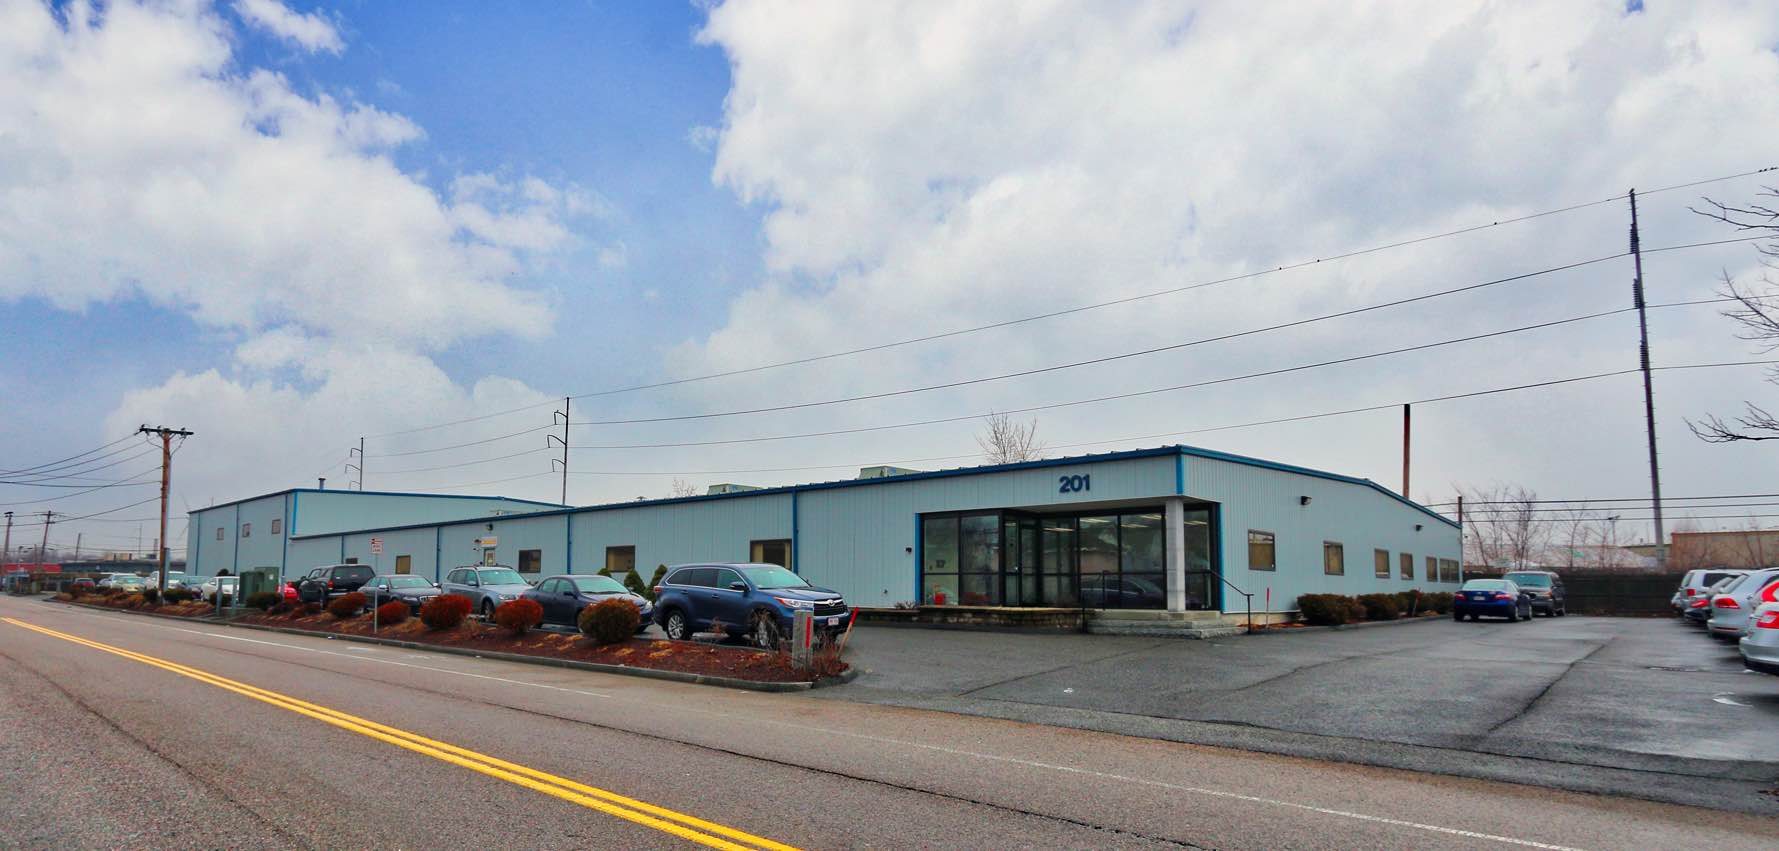 201 crescent avenue chelsea ma silver line extension warehouse manufacturing property the seyon group